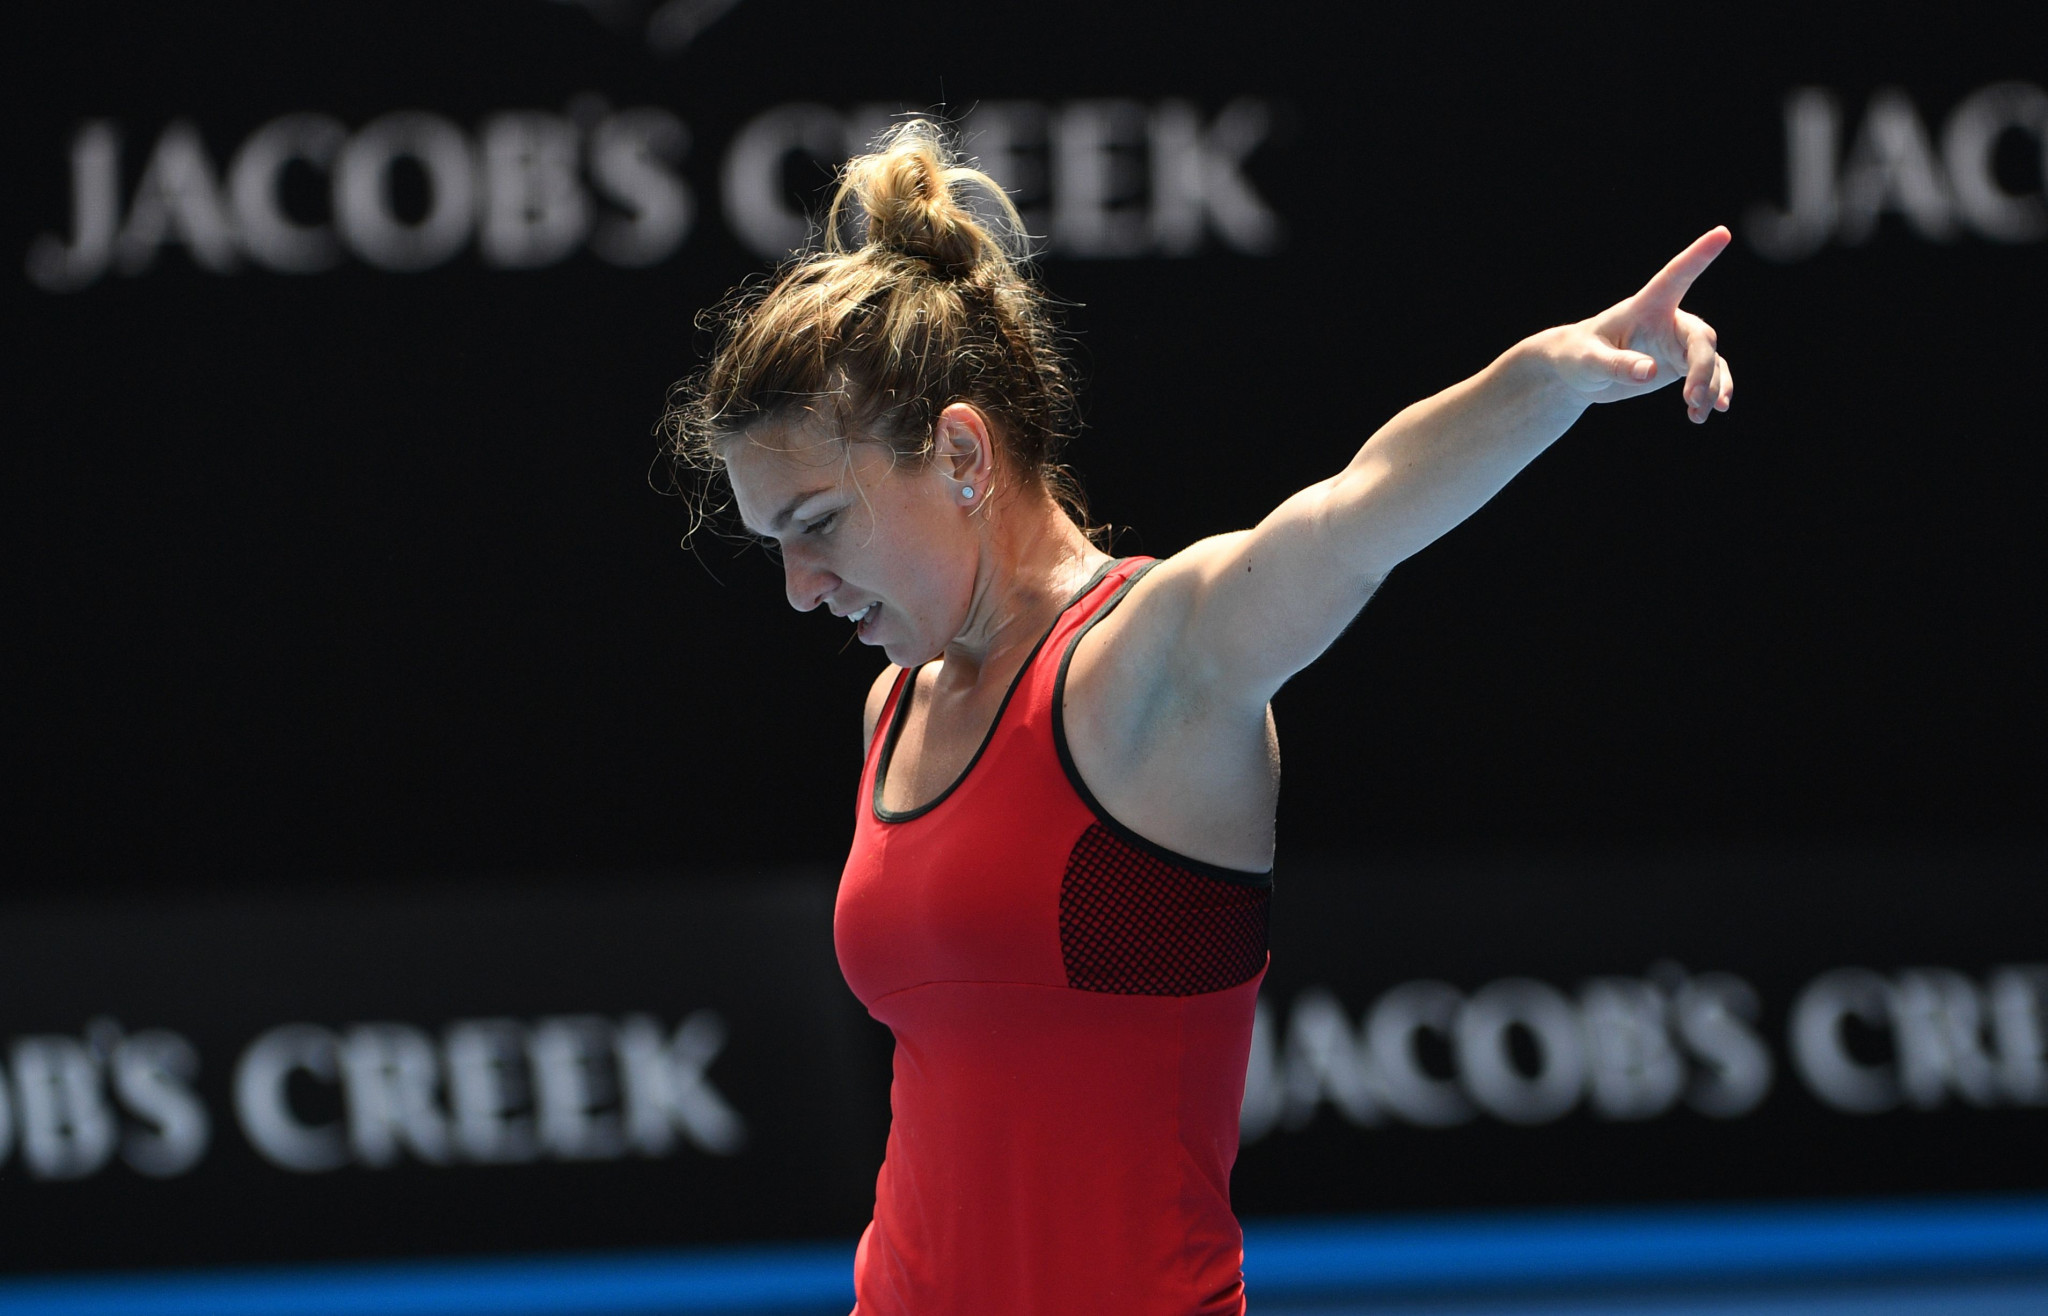 Halep and Kerber win in contrasting styles at Australian Open